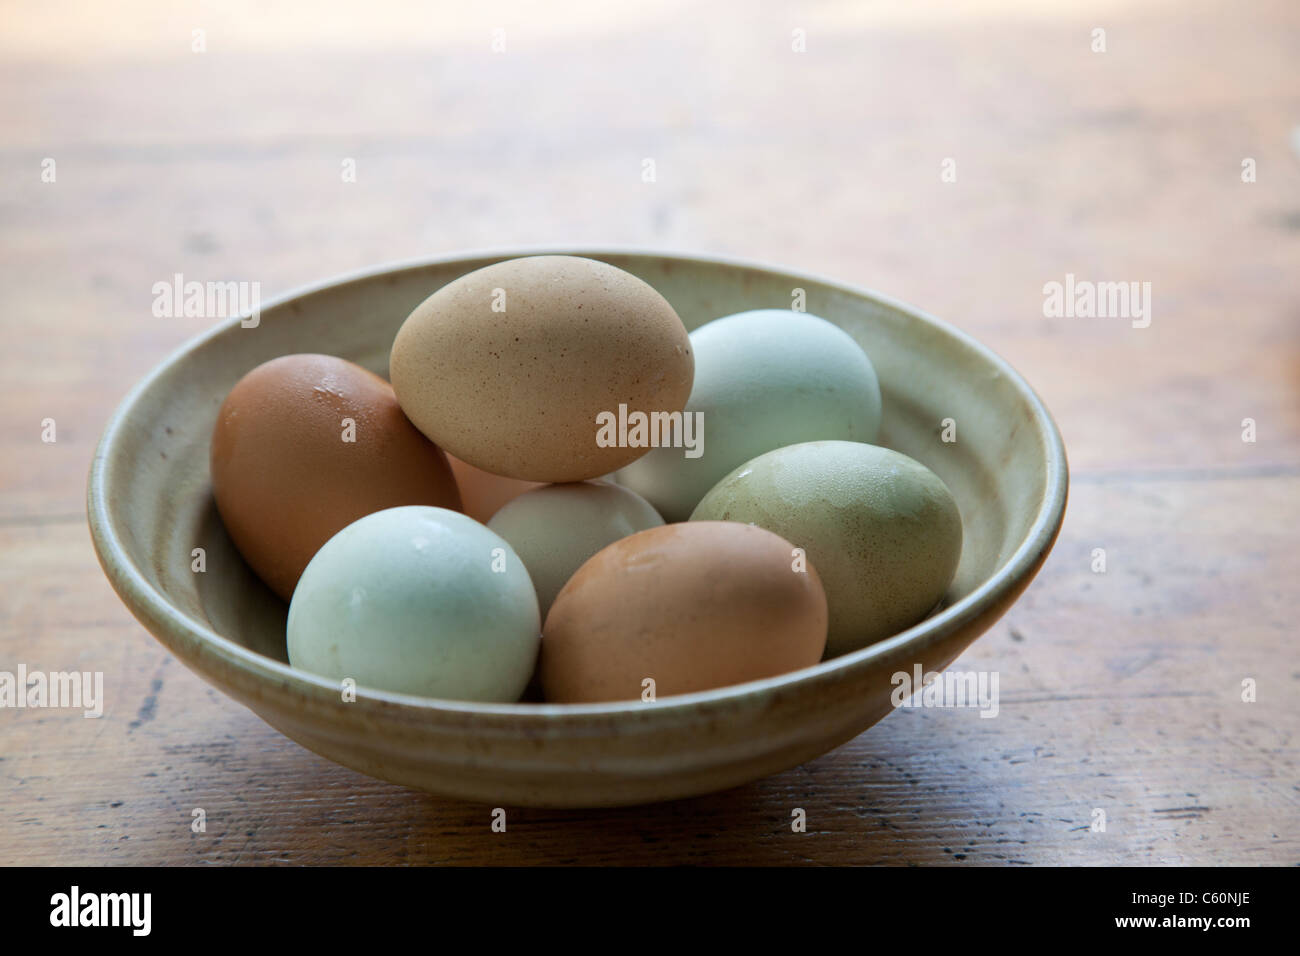 variety of different colored farm fresh eggs in a bowl - Stock Image